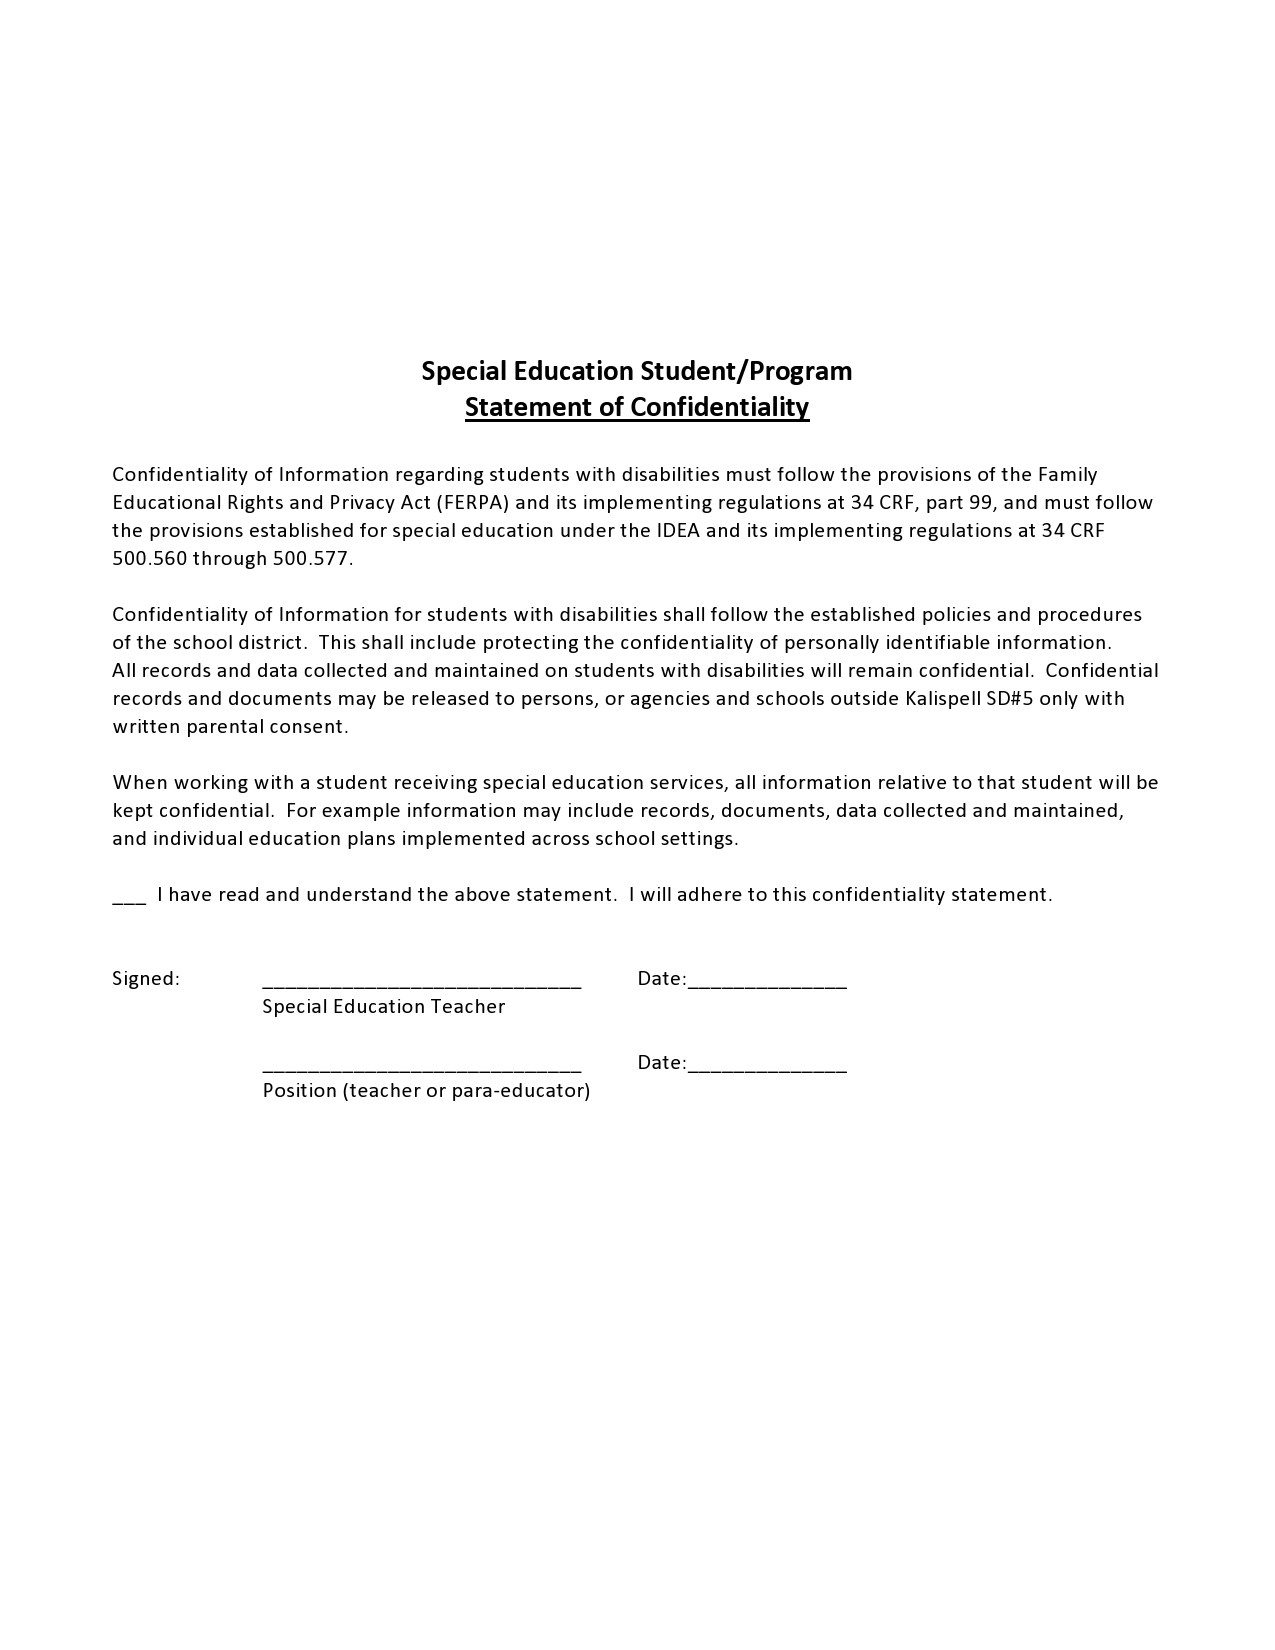 Free confidentiality statement 36